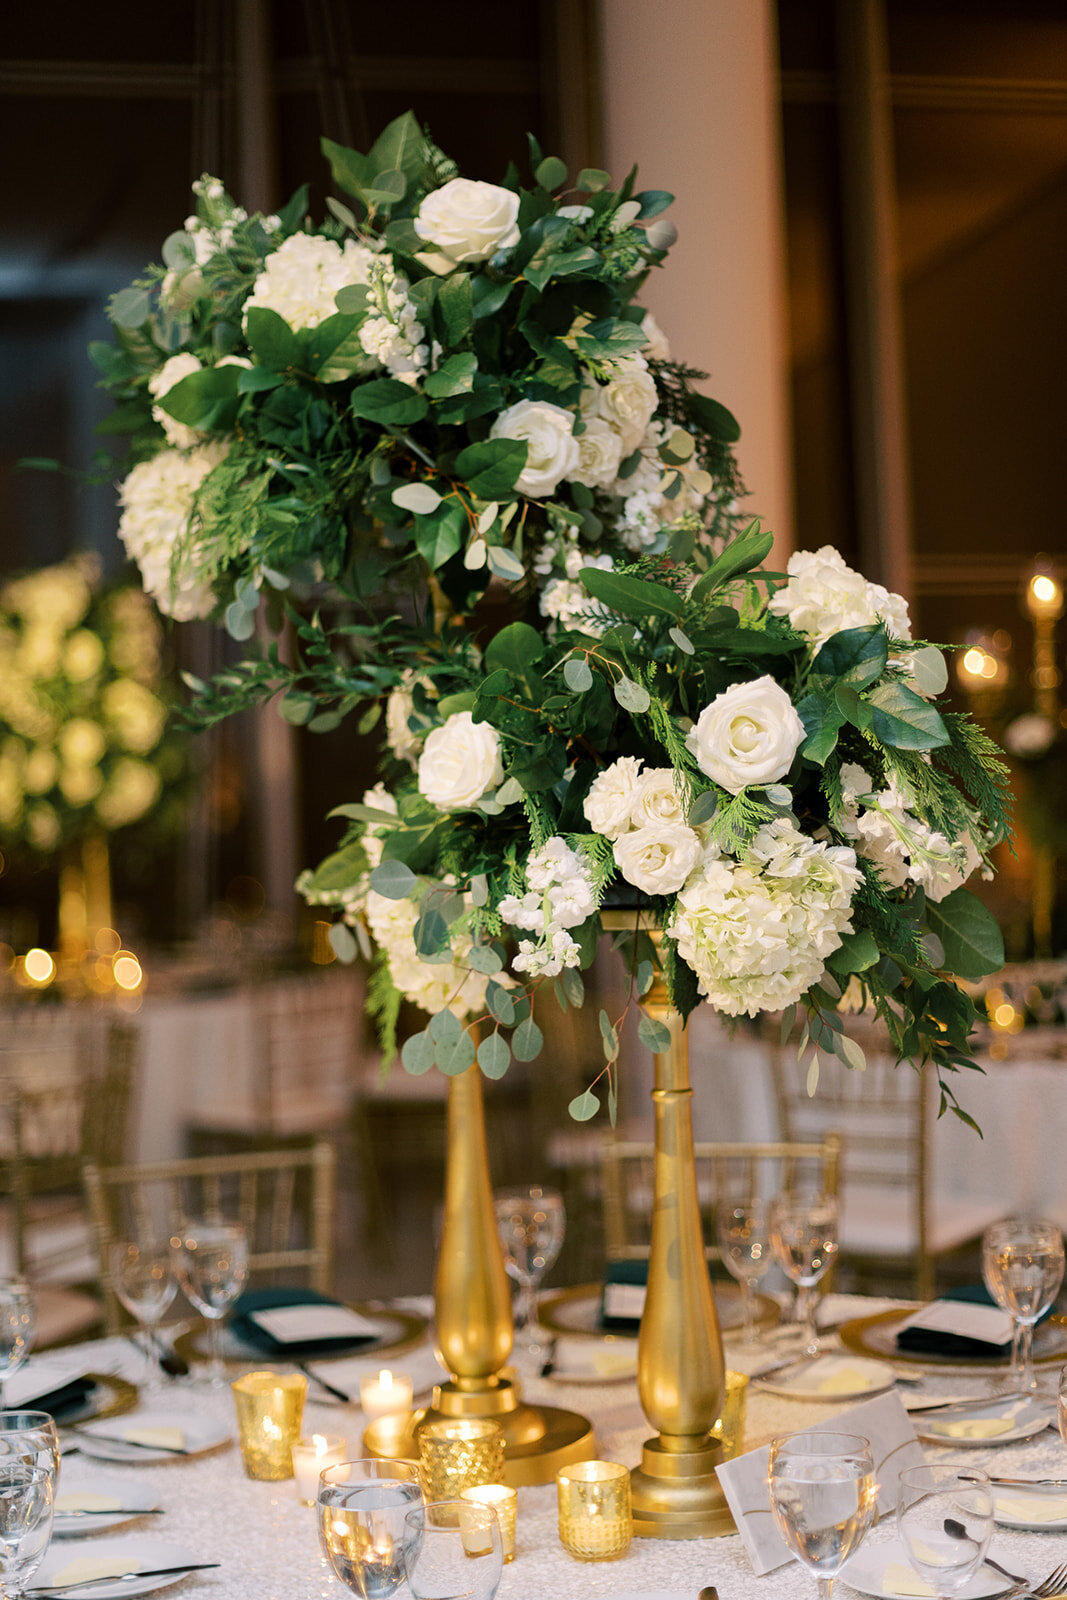 24-Venue-Six10-Wedding-centerpiece